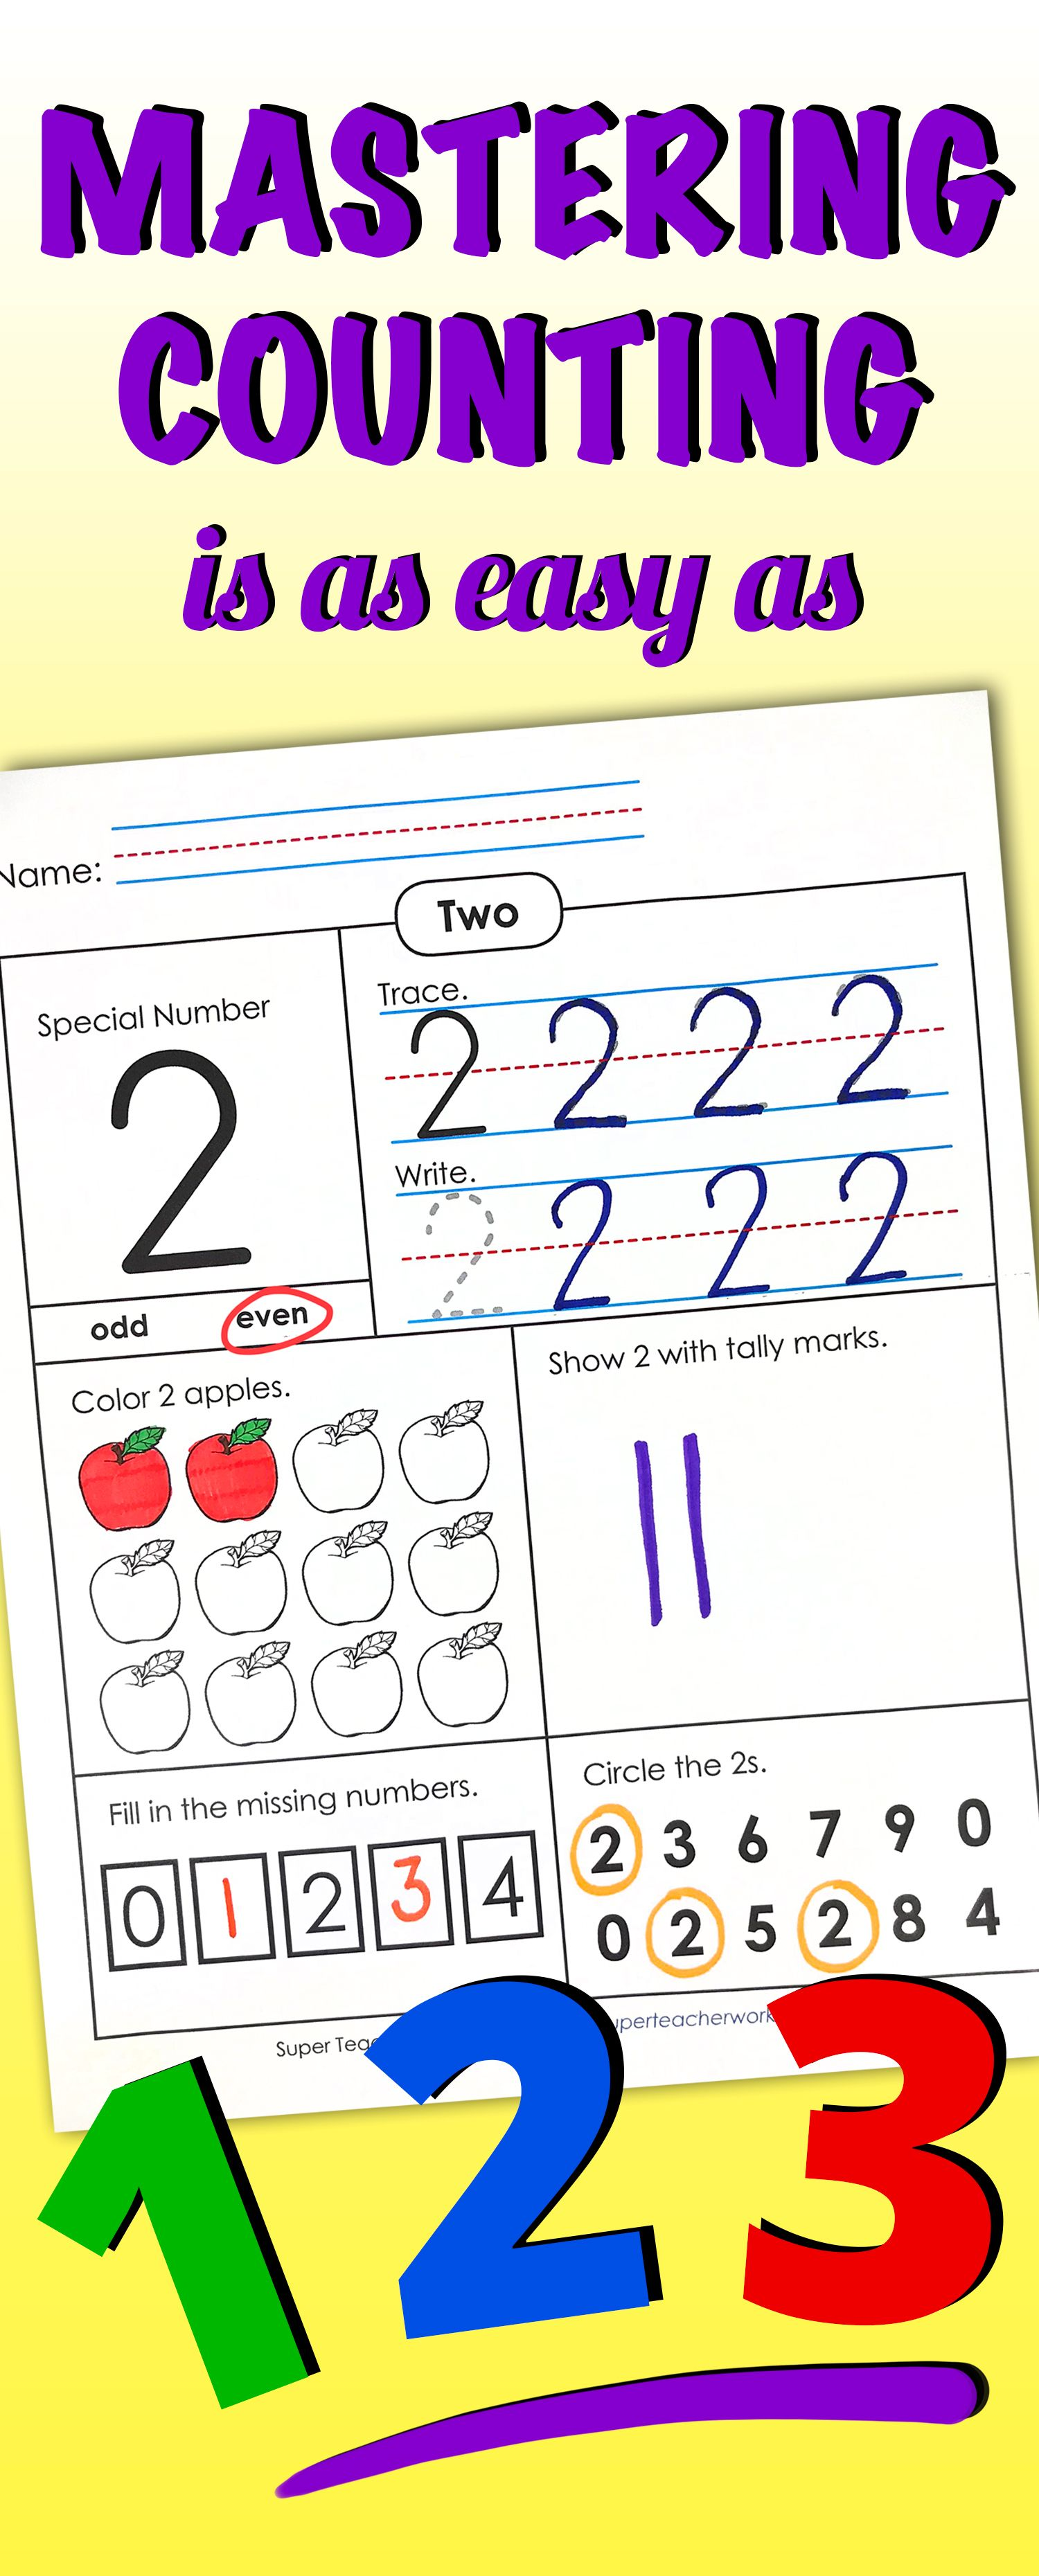 Practice Counting With Basiccounting Worksheets